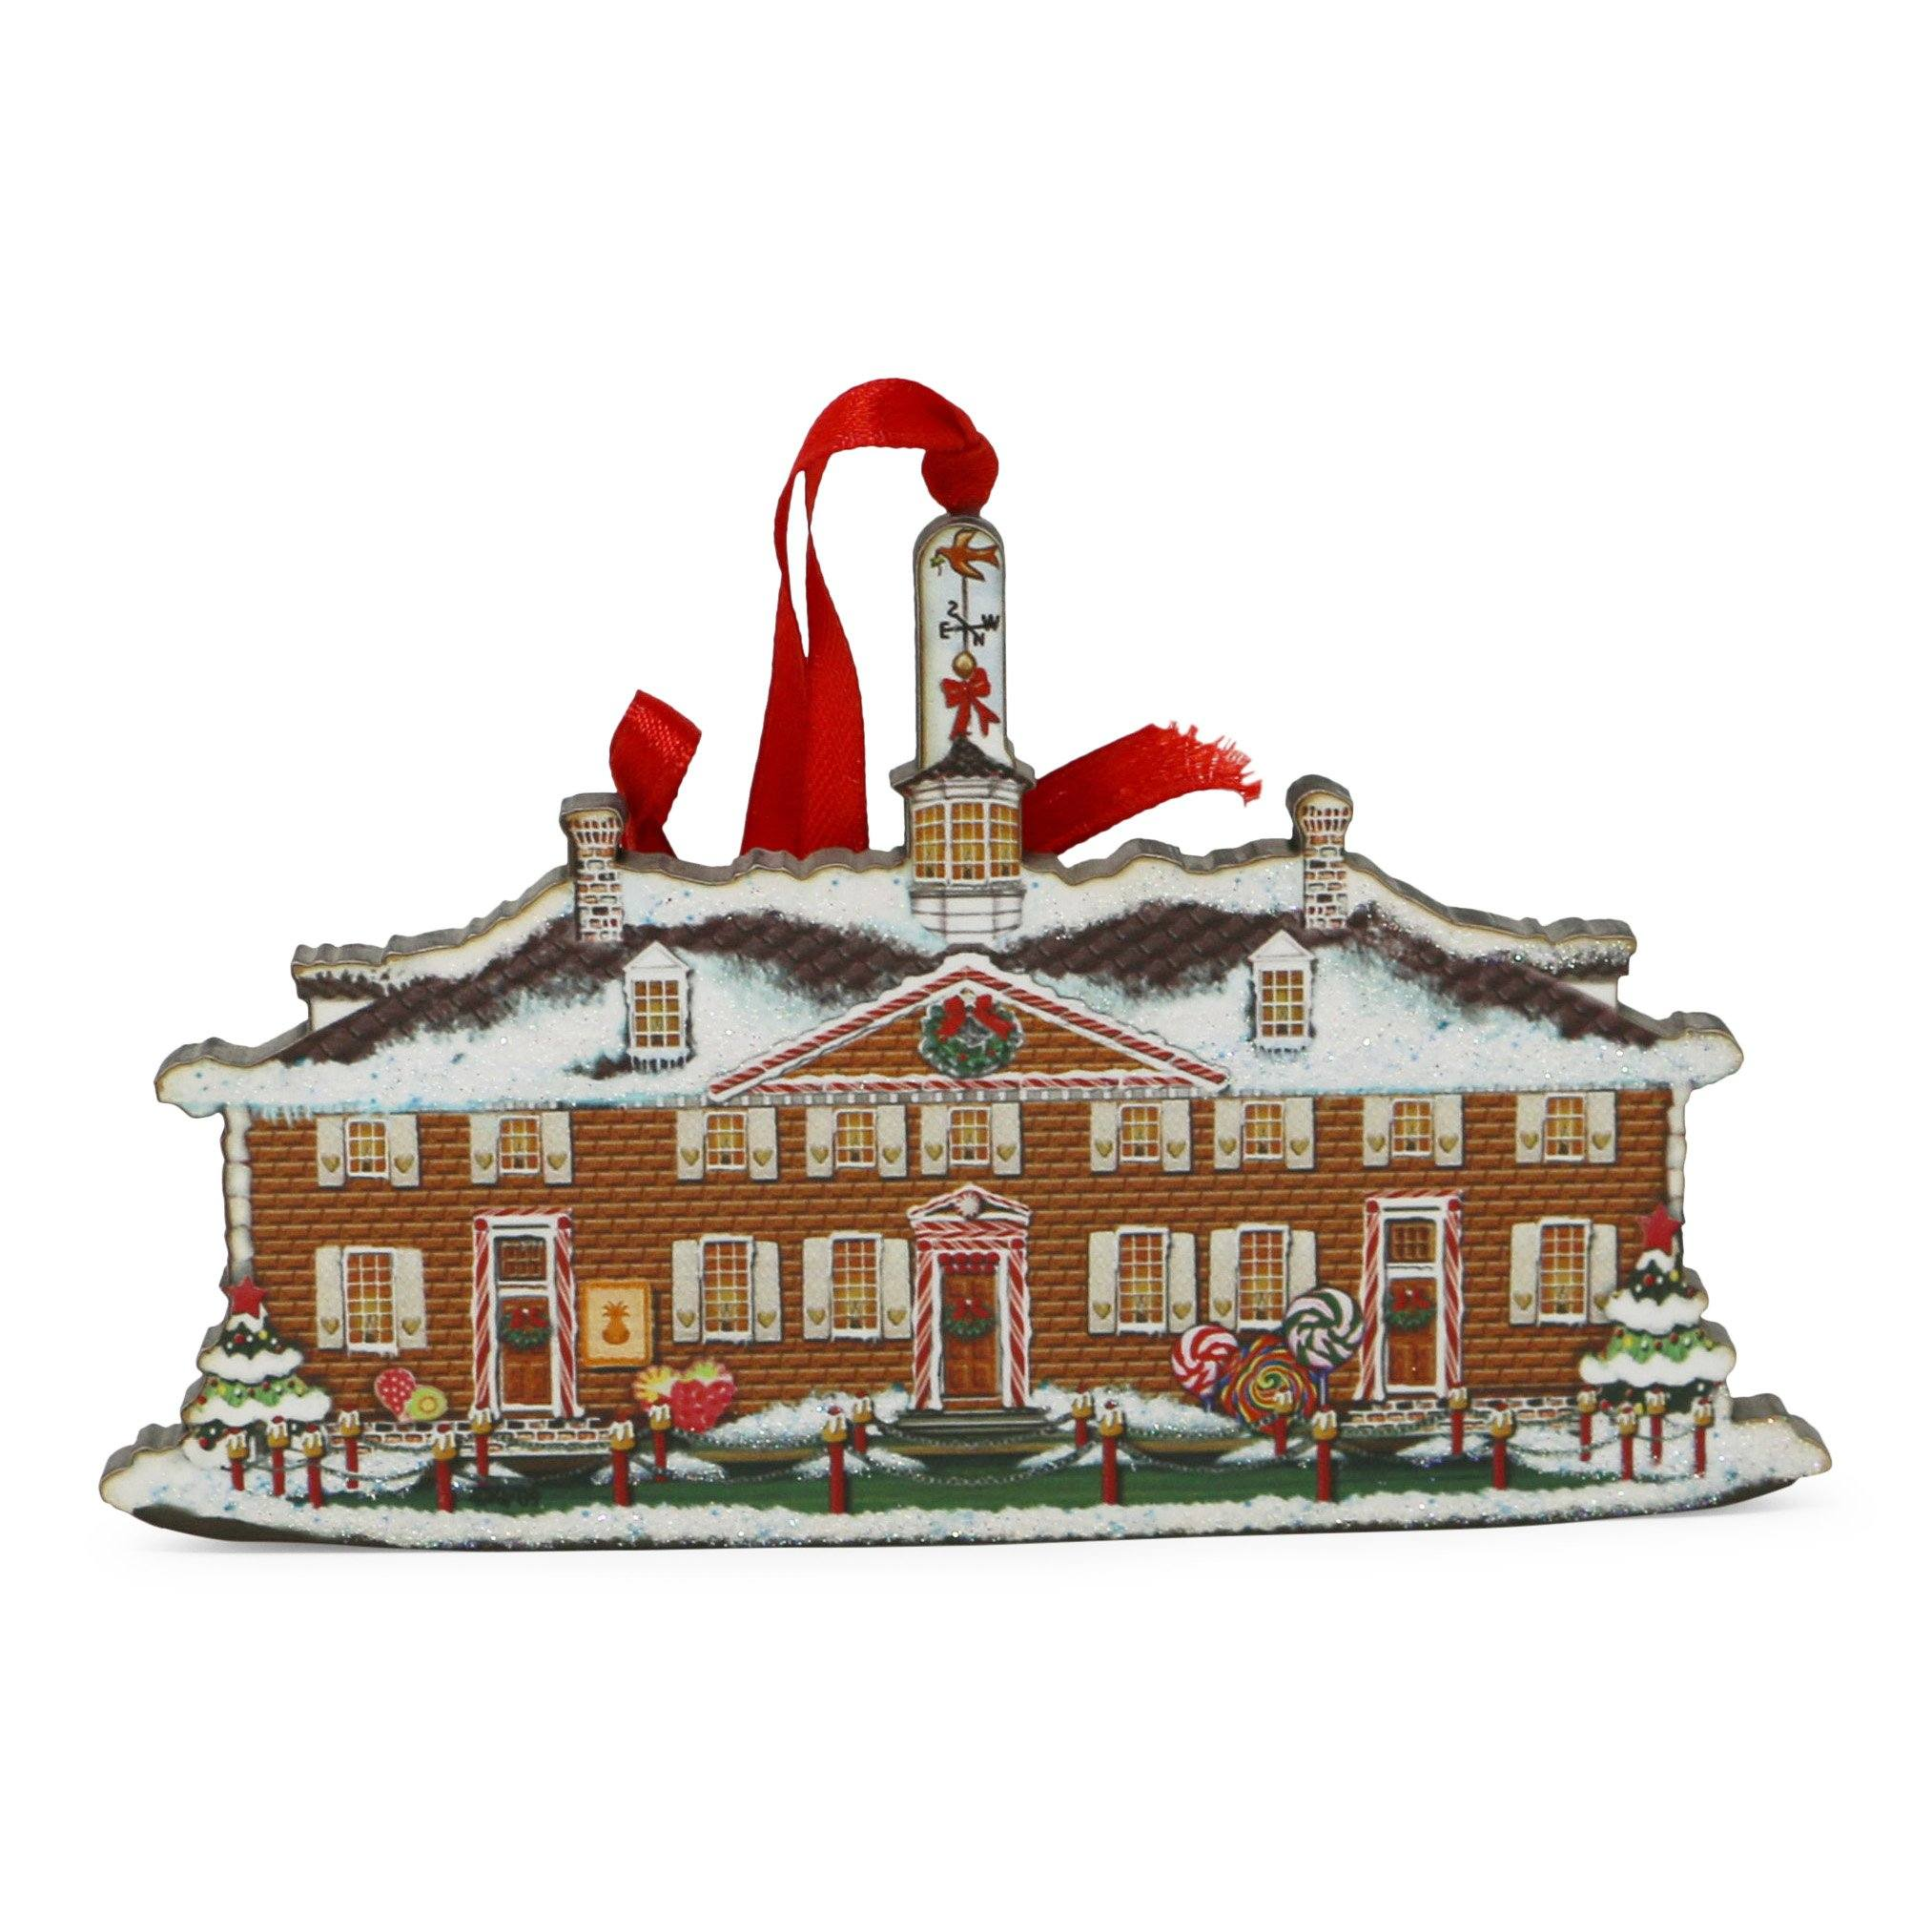 West Front Gingerbread Wood Ornament